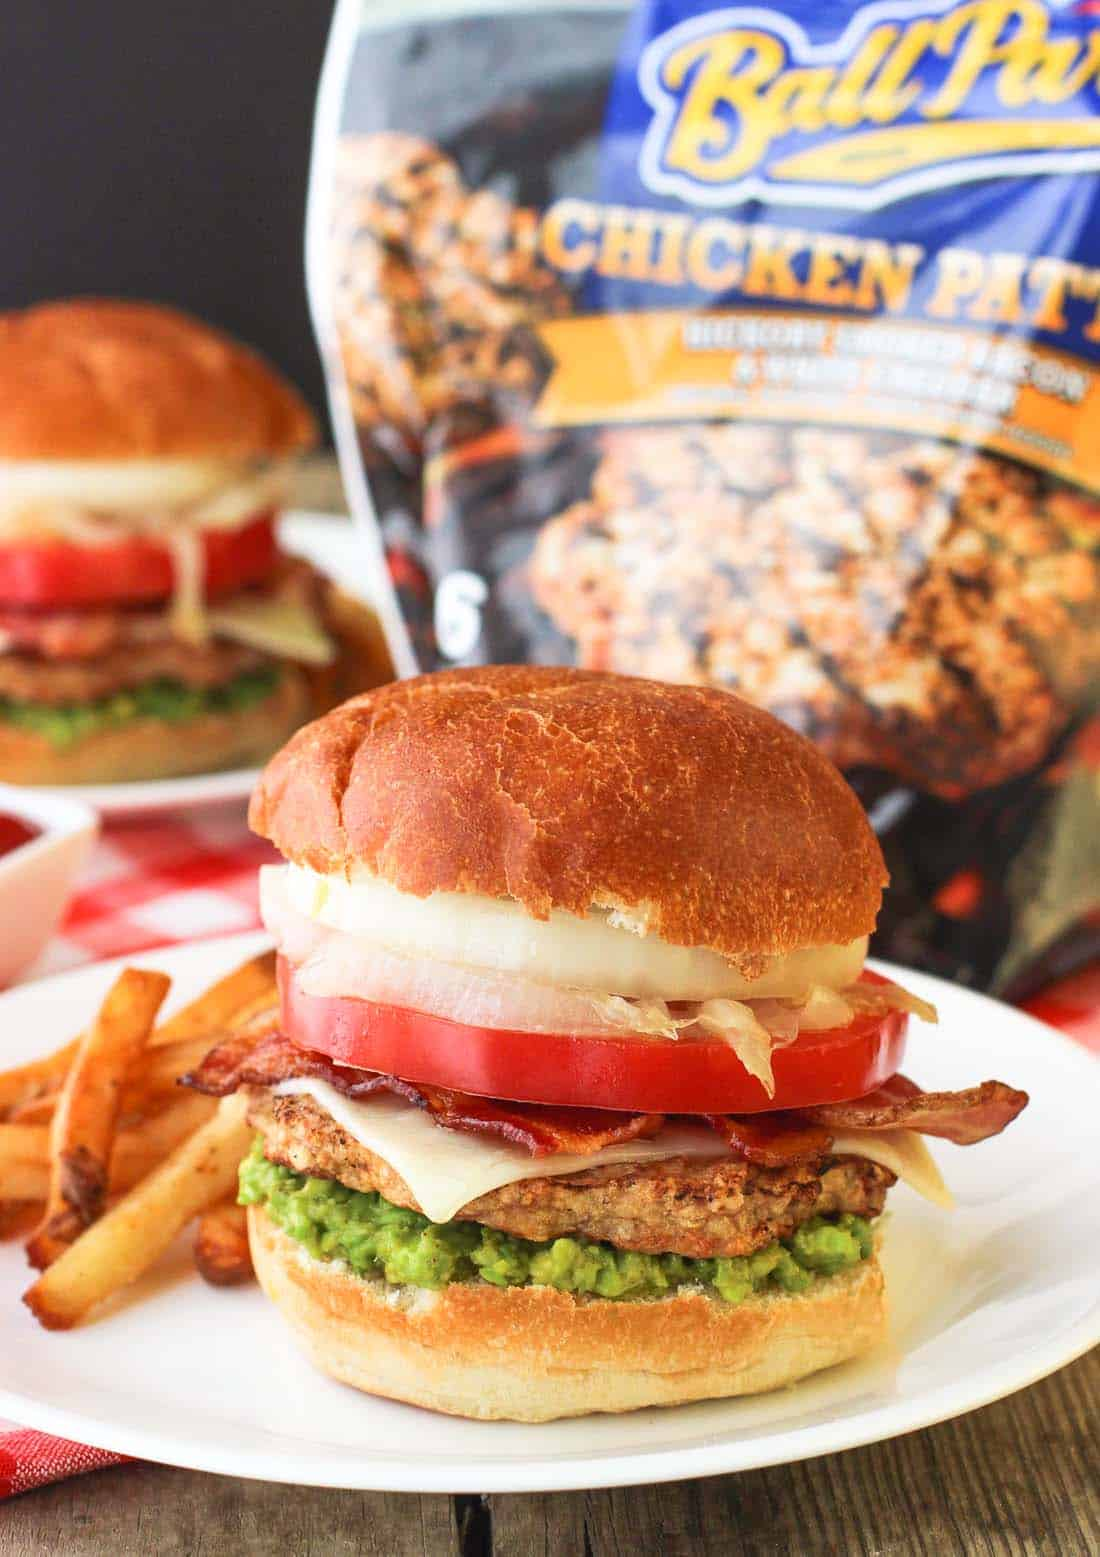 A burger loaded with all the fixings on a plate in front of the Ball Park chicken patty packaging